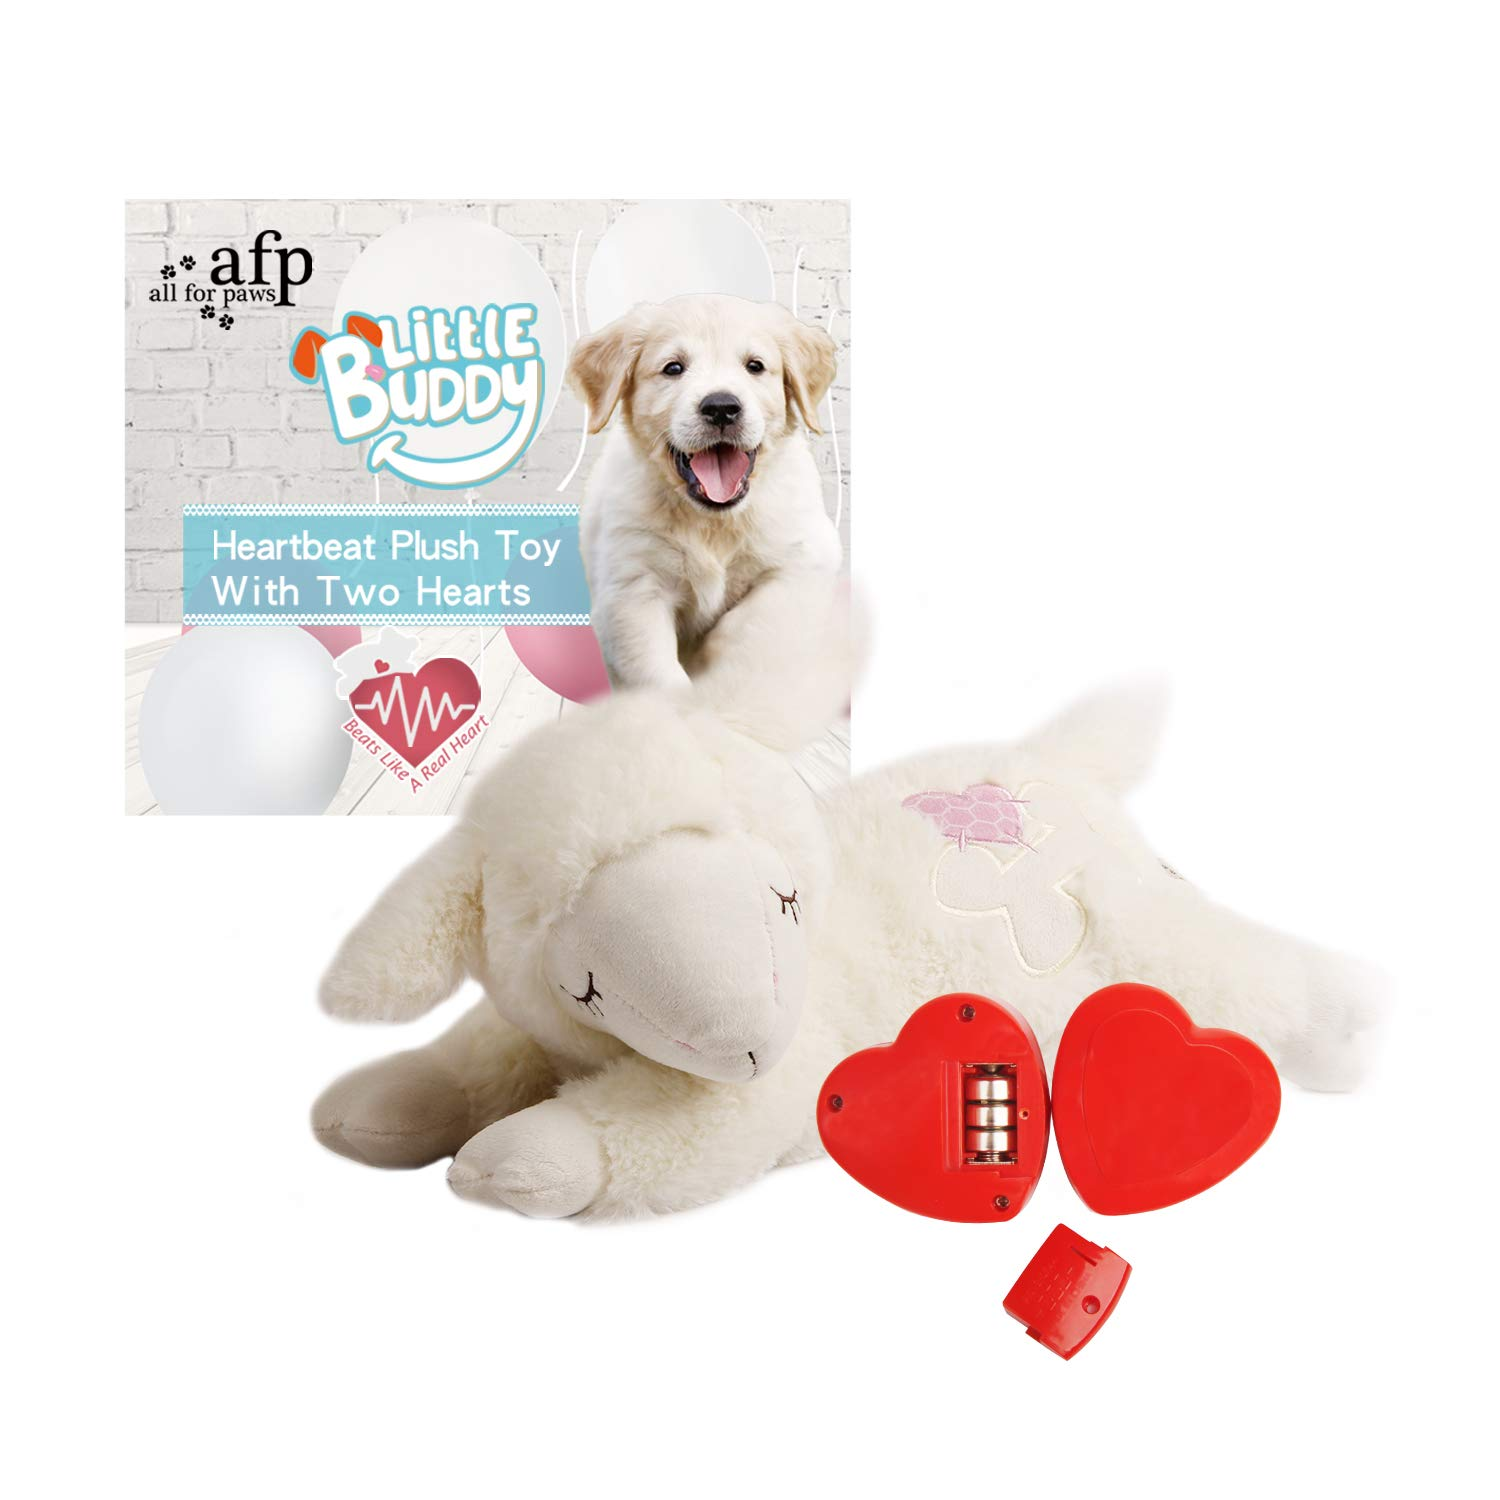 ALL FOR PAWS AFP Snuggle Sheep Pet Behavioral Aid Toy Plush Toy (TWO HEARTBEAT, White)